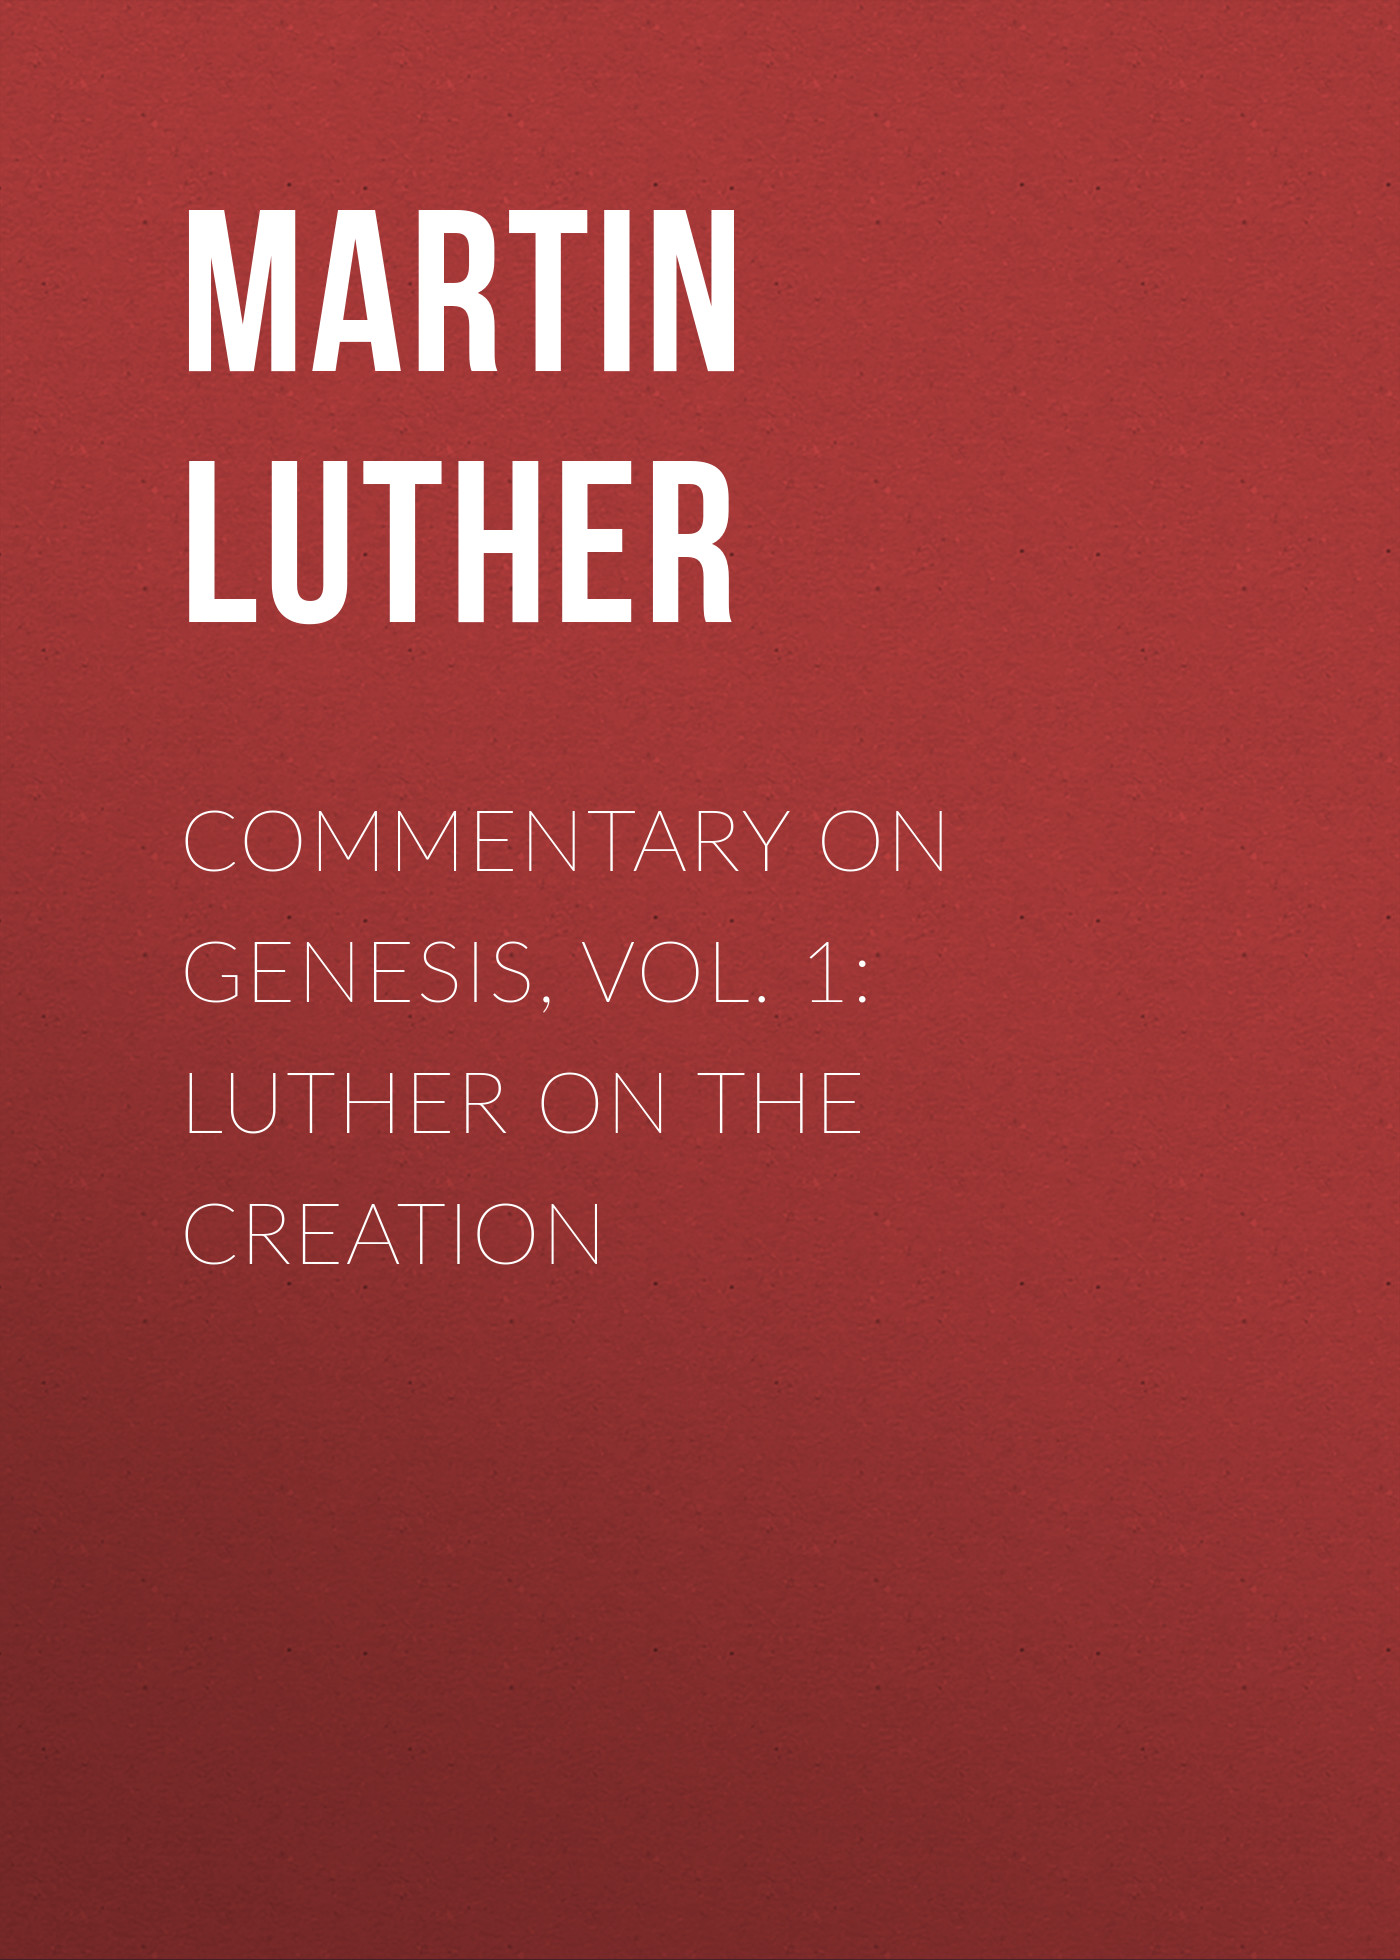 Commentary on Genesis, Vol. 1: Luther on the Creation фото